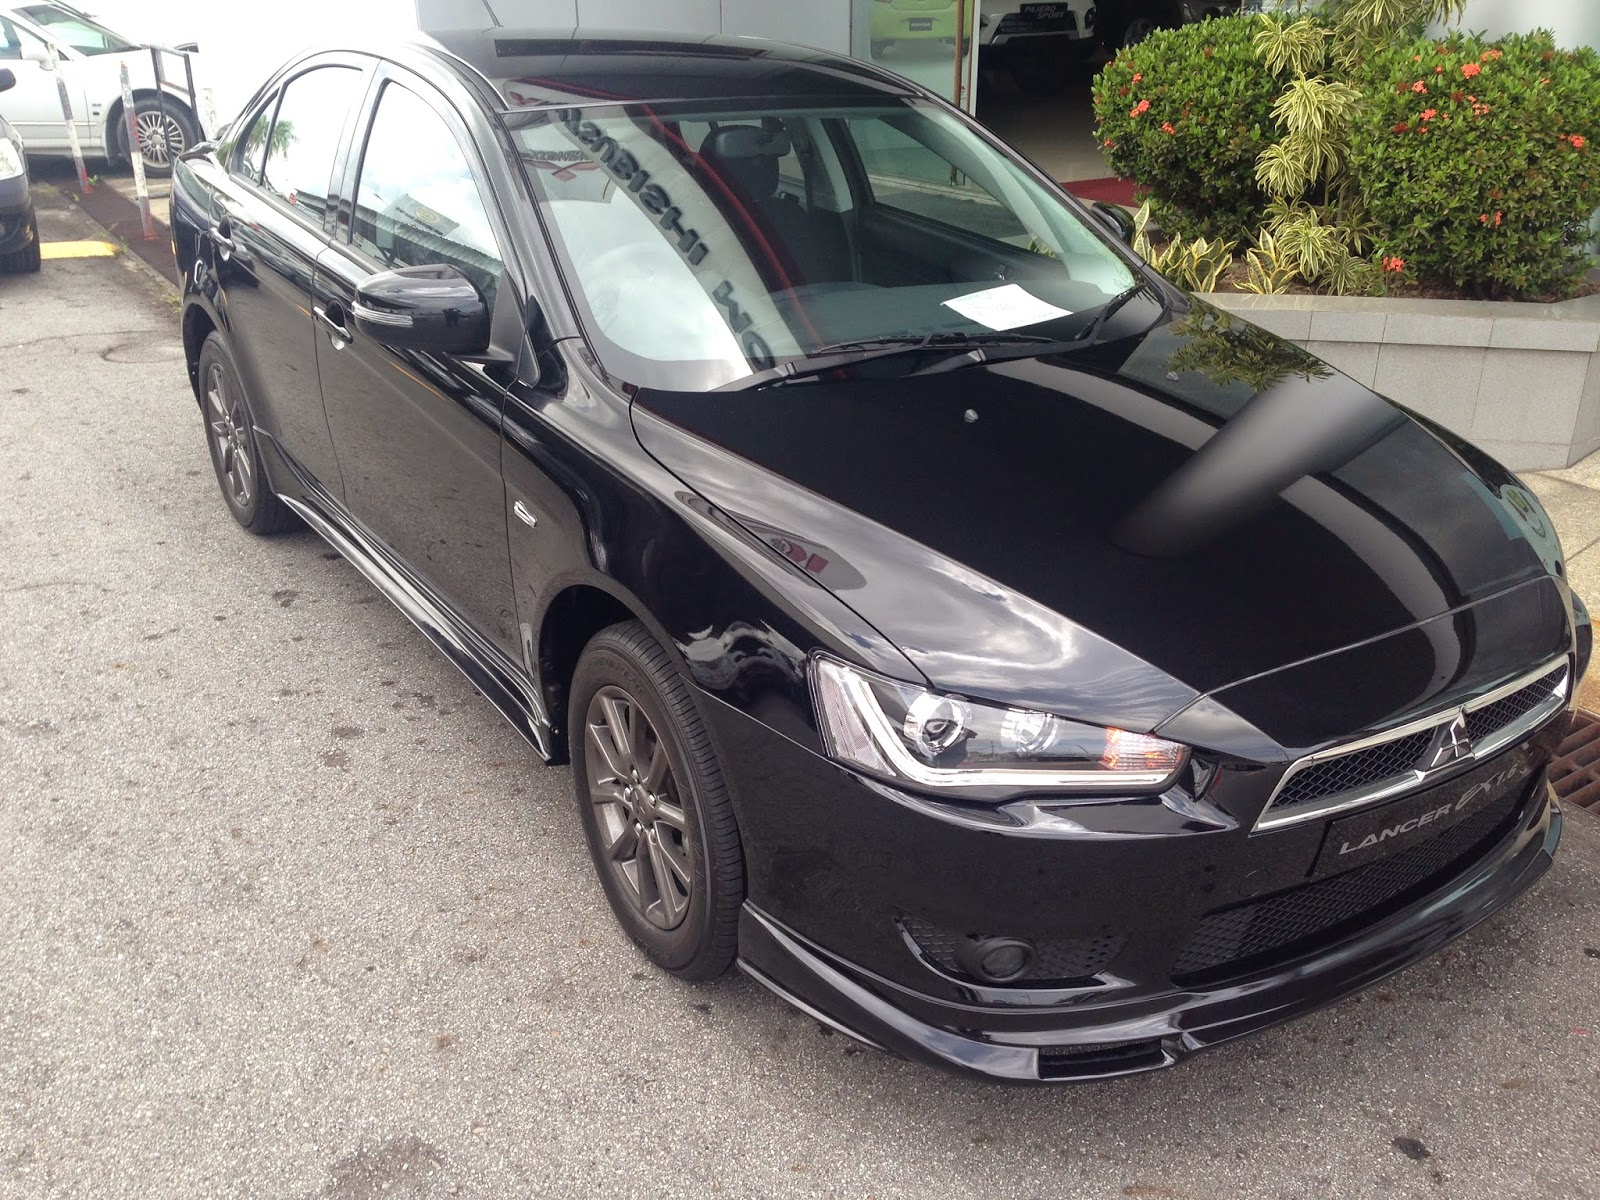 achieving more than 10 000 units since the lancer entered the brunei market ghk motors sdn bhd introduced the sportier looking mitsubishi lancer ex 1 6